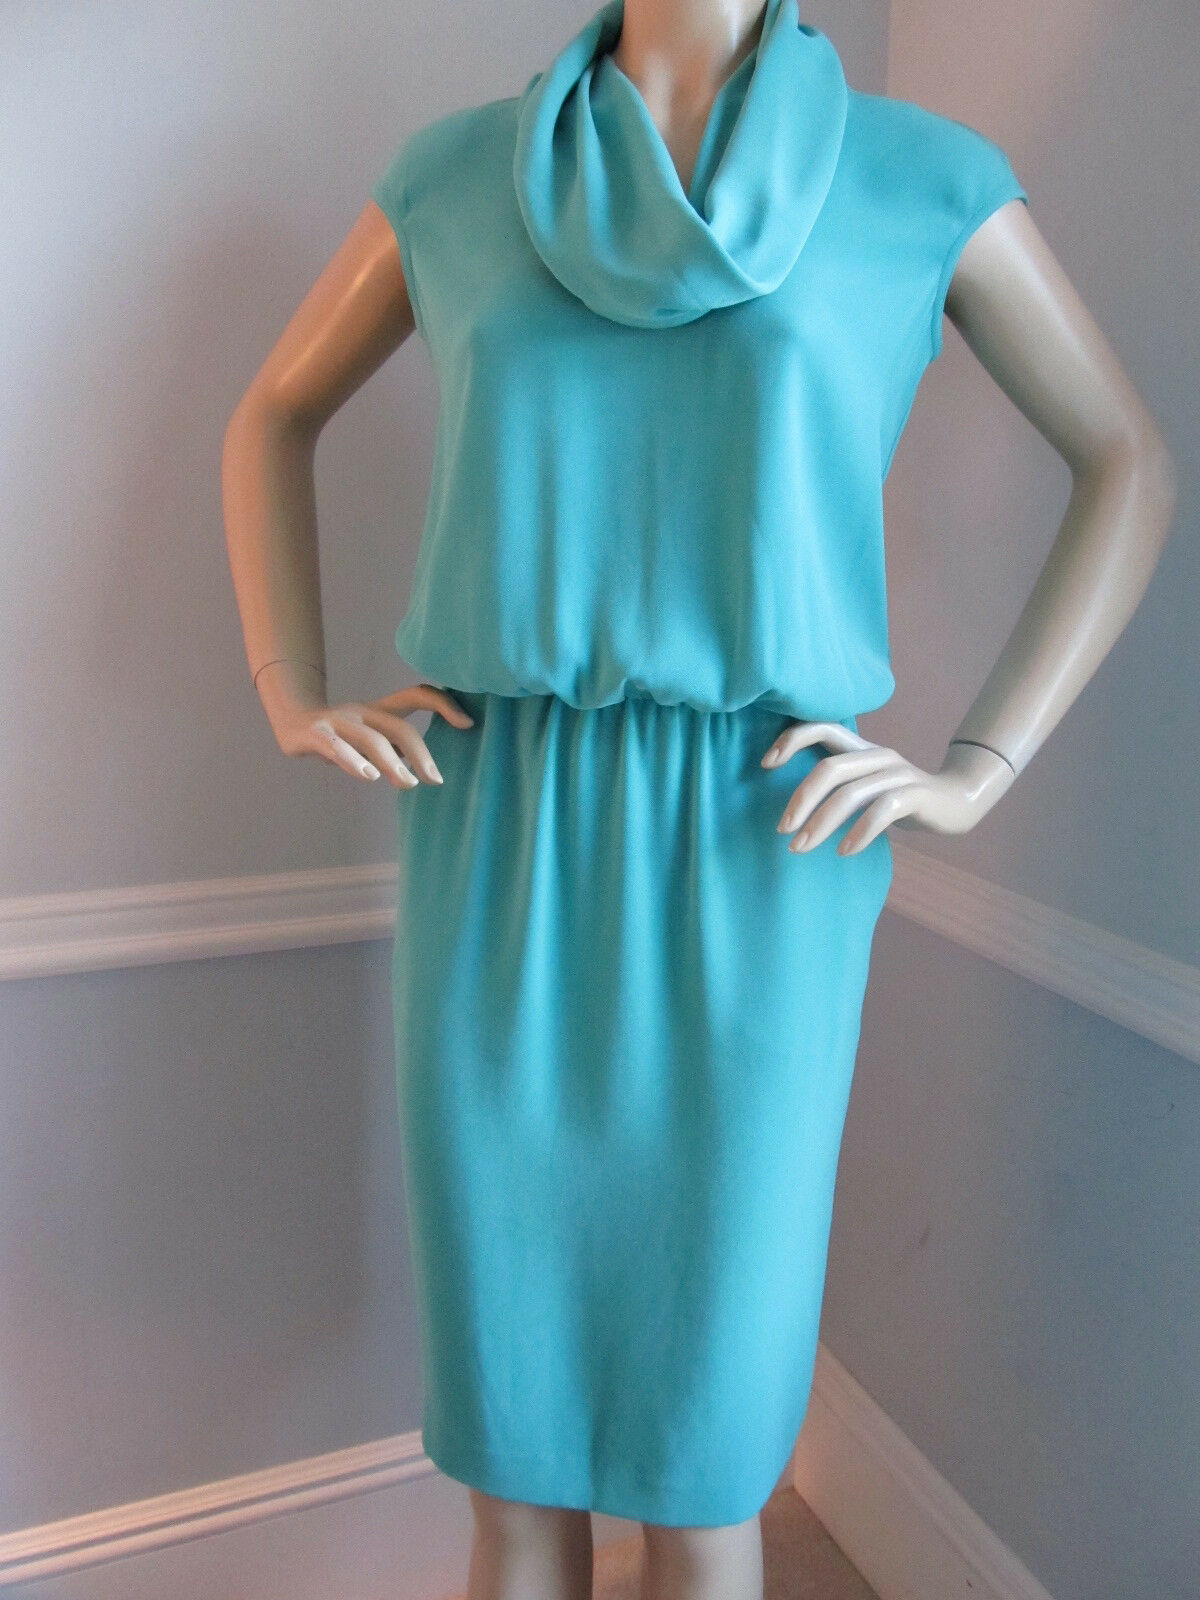 BRAND NEW JUST IN ST JOHN KNIT SIZE  2 GREEN  JADE CREPE DRESS